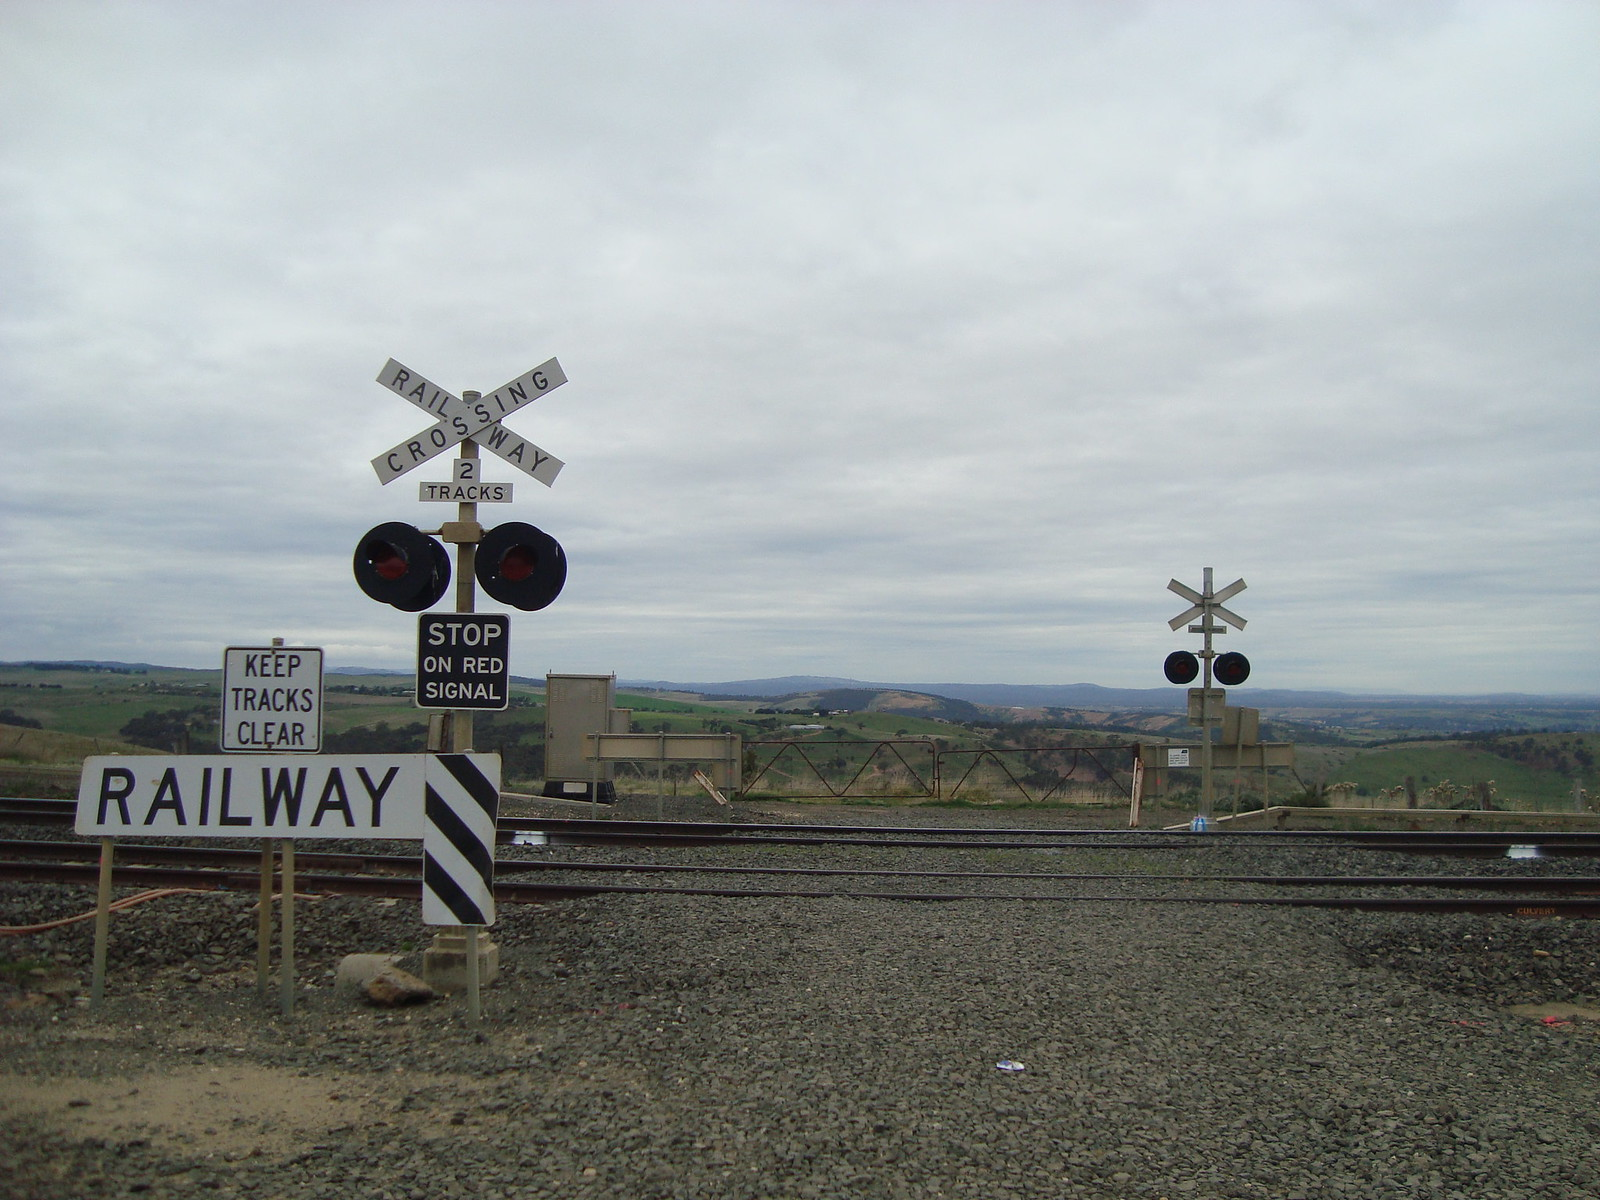 Mike's Railroad Crossing Forum • View topic - Australian